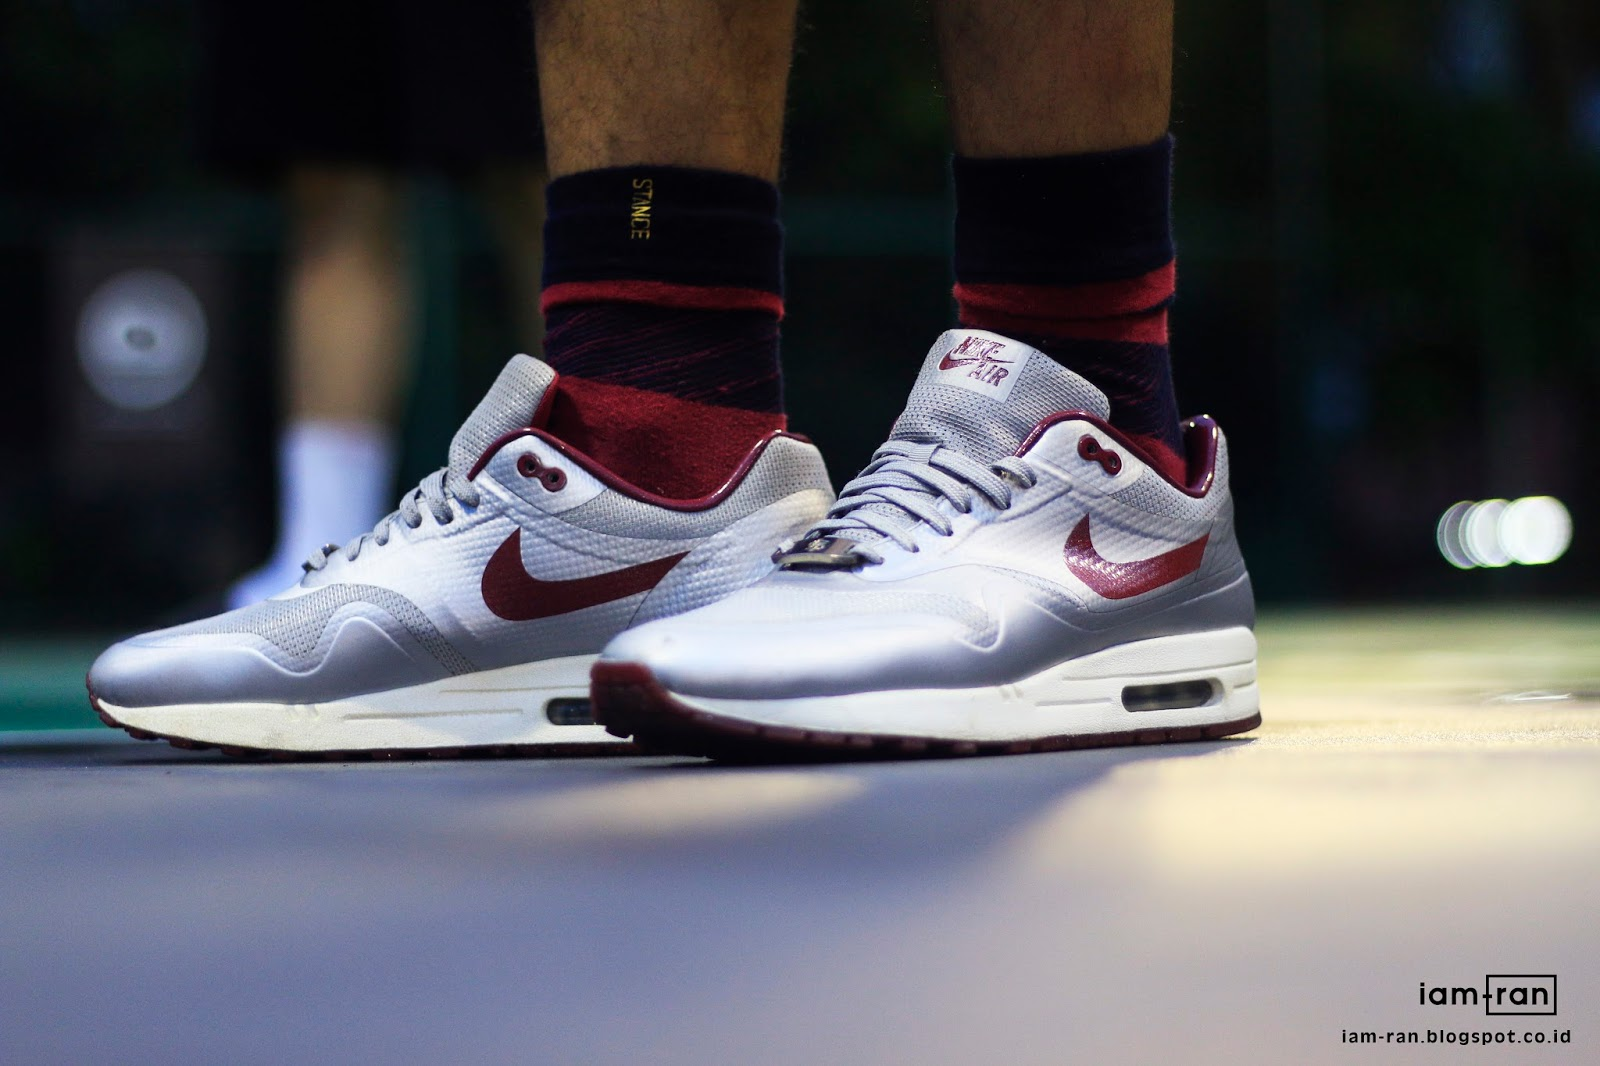 premium selection 36873 08629 ON FEET   Dayu - Nike Air Max 1  Night Track  Hyperfuse Quickstrike